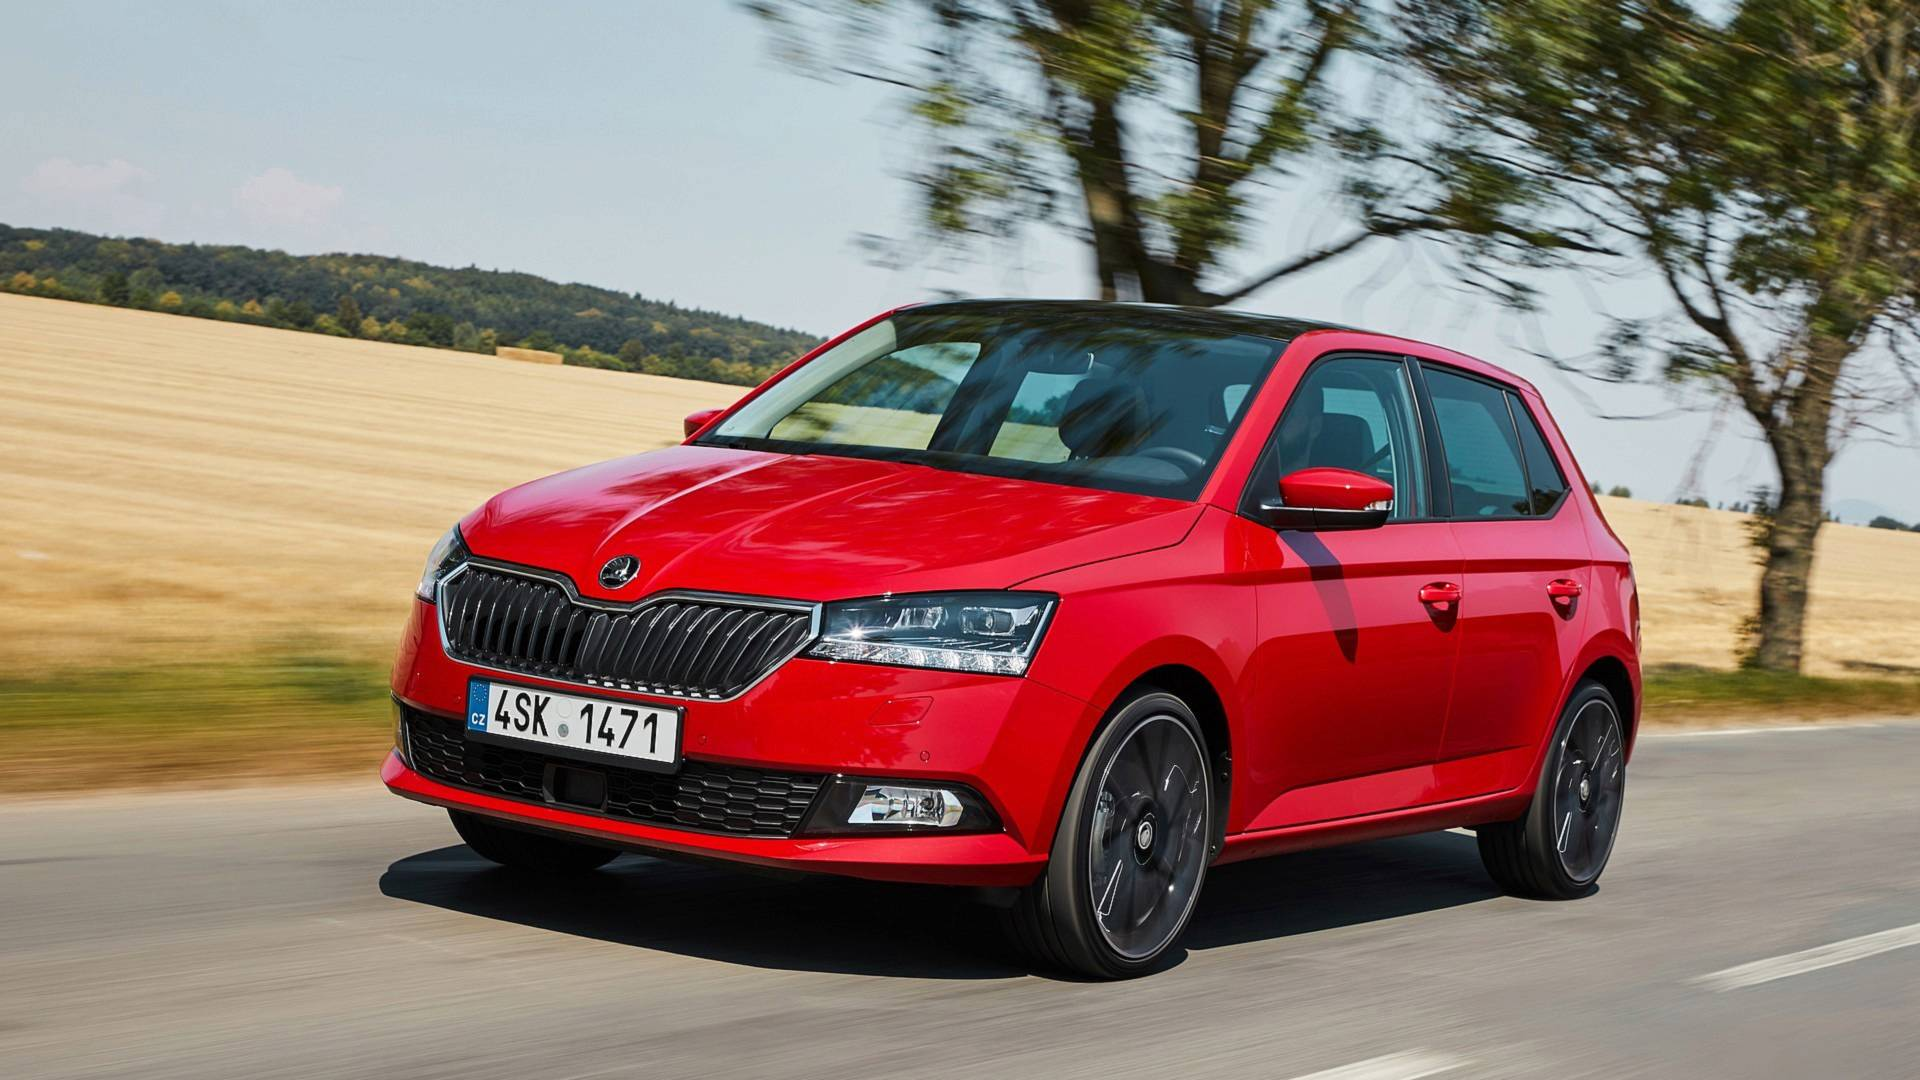 2020 Skoda Fabia front three quarters